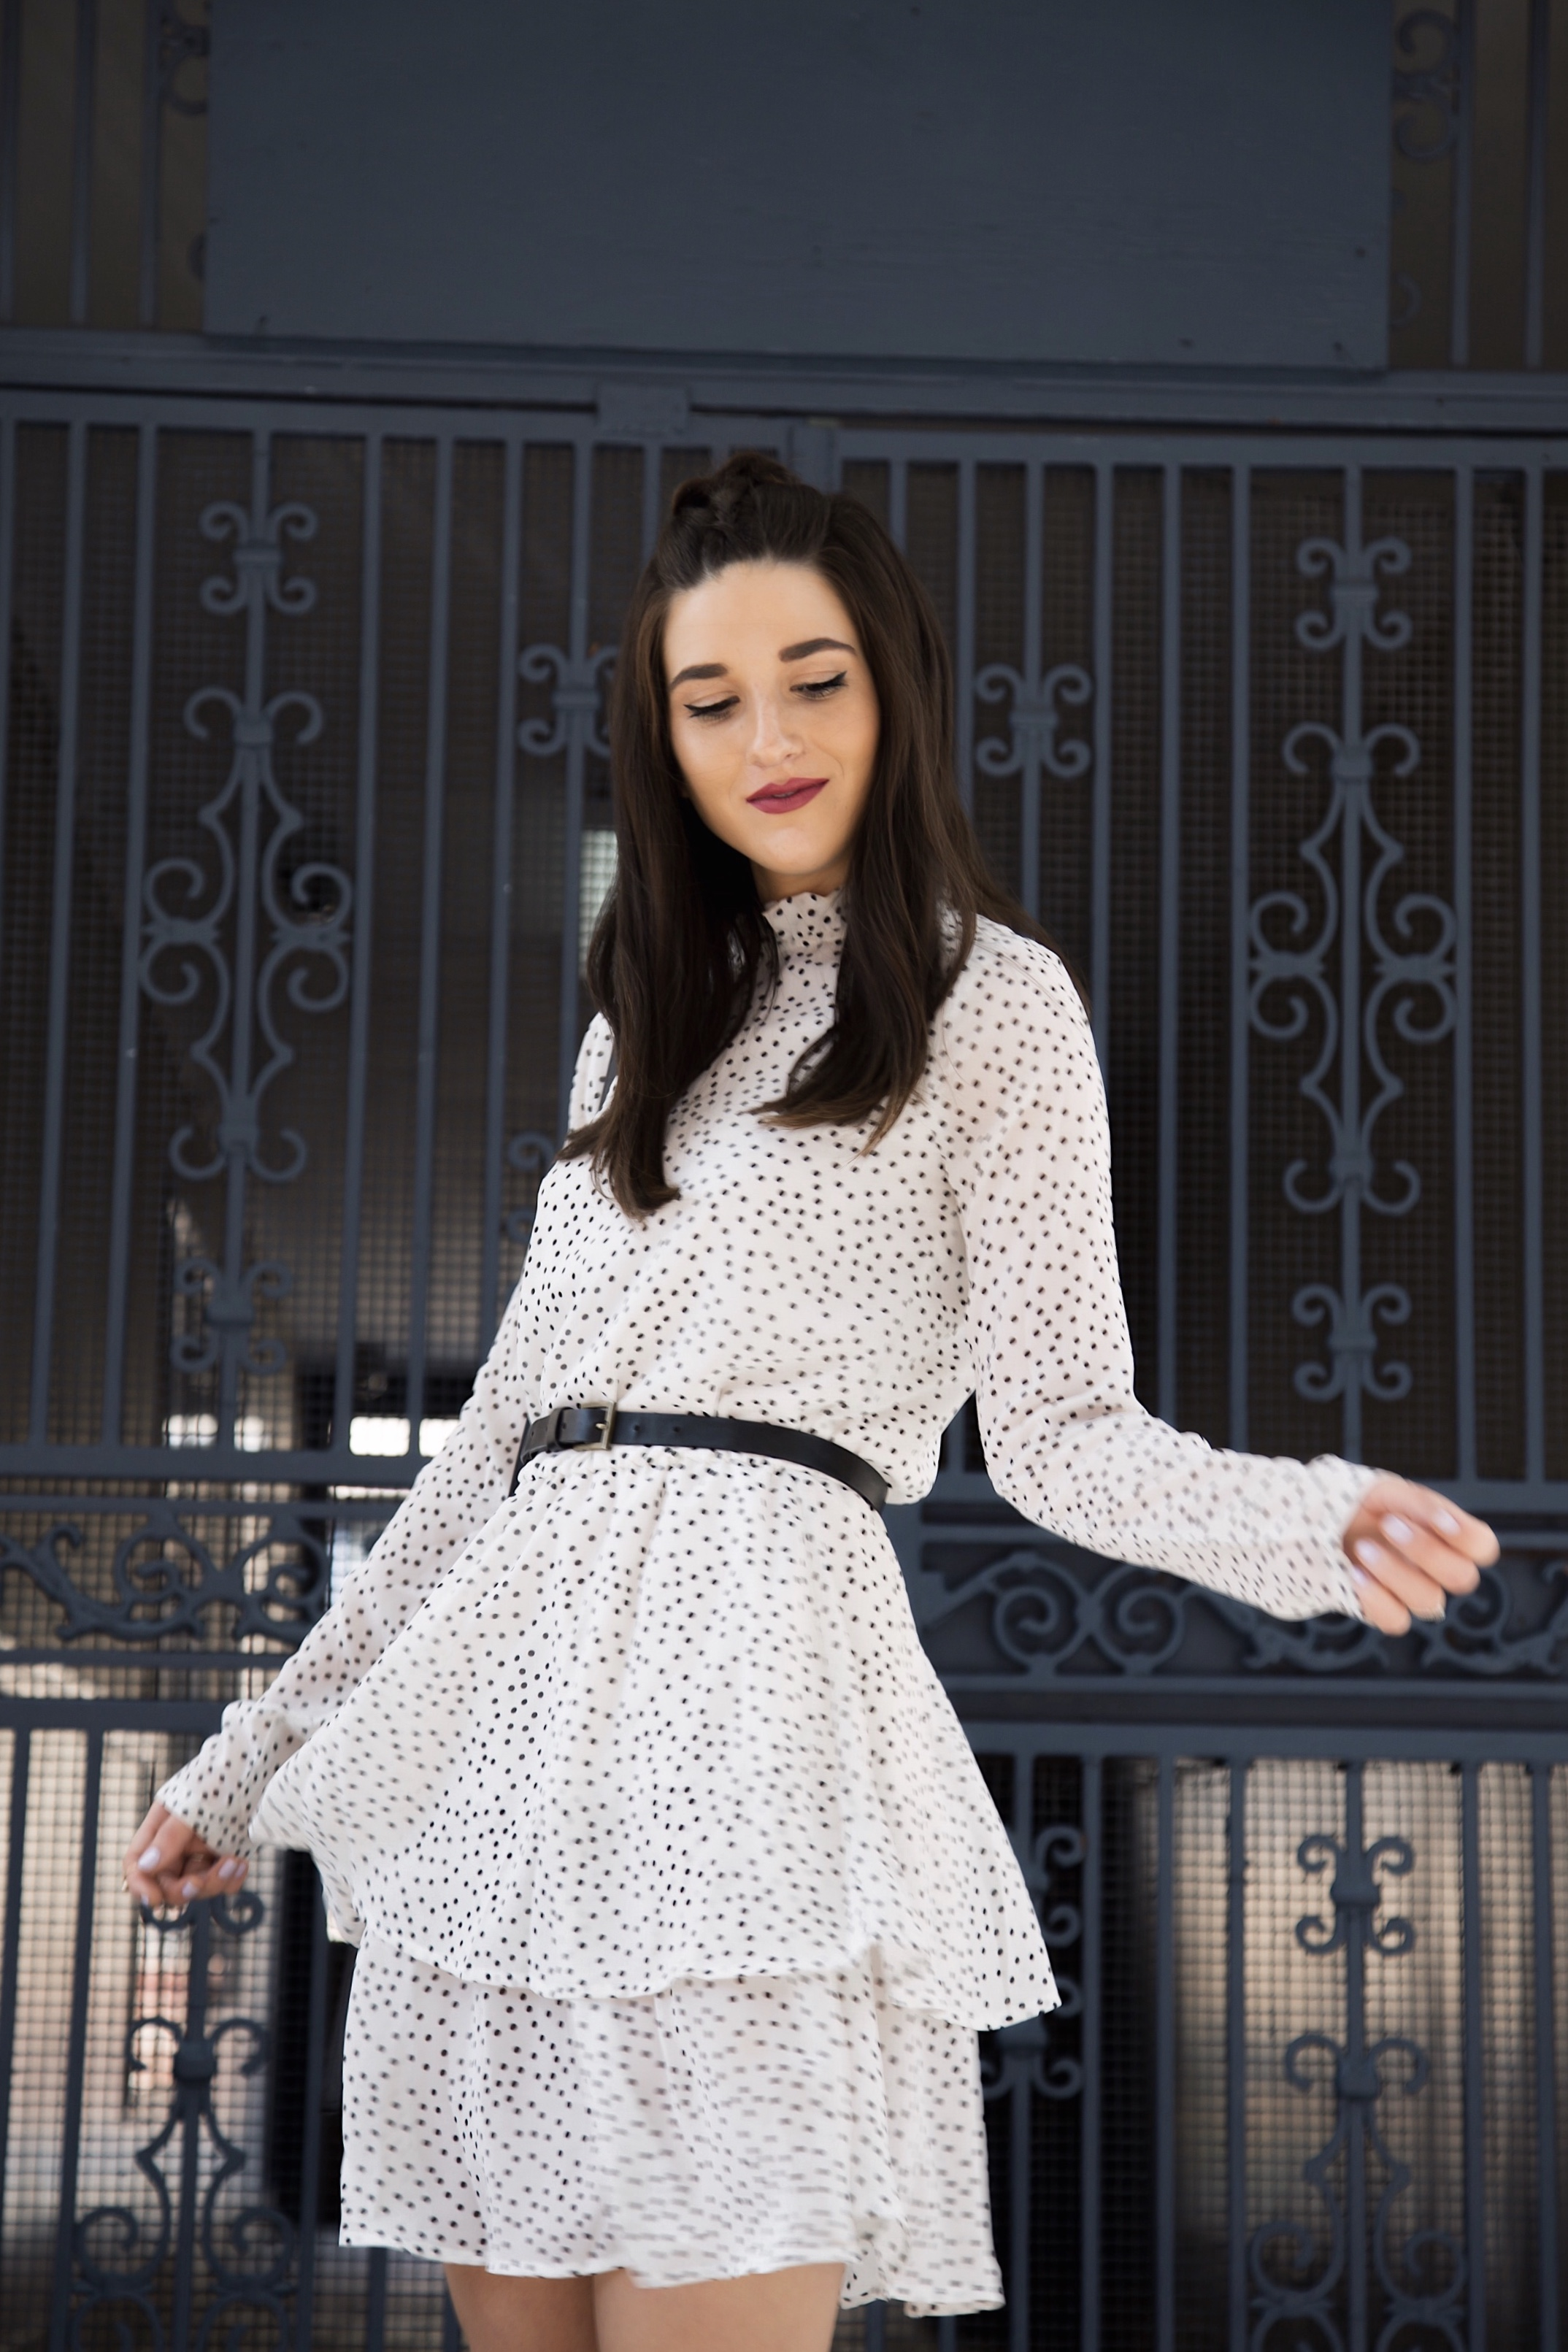 Dealing With Anxiety Polka Dot Tiered Dress Black Heels Esther Santer Fashion Blog NYC Street Style Blogger Outfit OOTD Trendy Braid Hair Pretty Details Pointy Toe Hairstyle Photoshoot  By Jackie Shelly Mock Neck Fall 2018 Inspo Inspiration Cute Shop.jpg